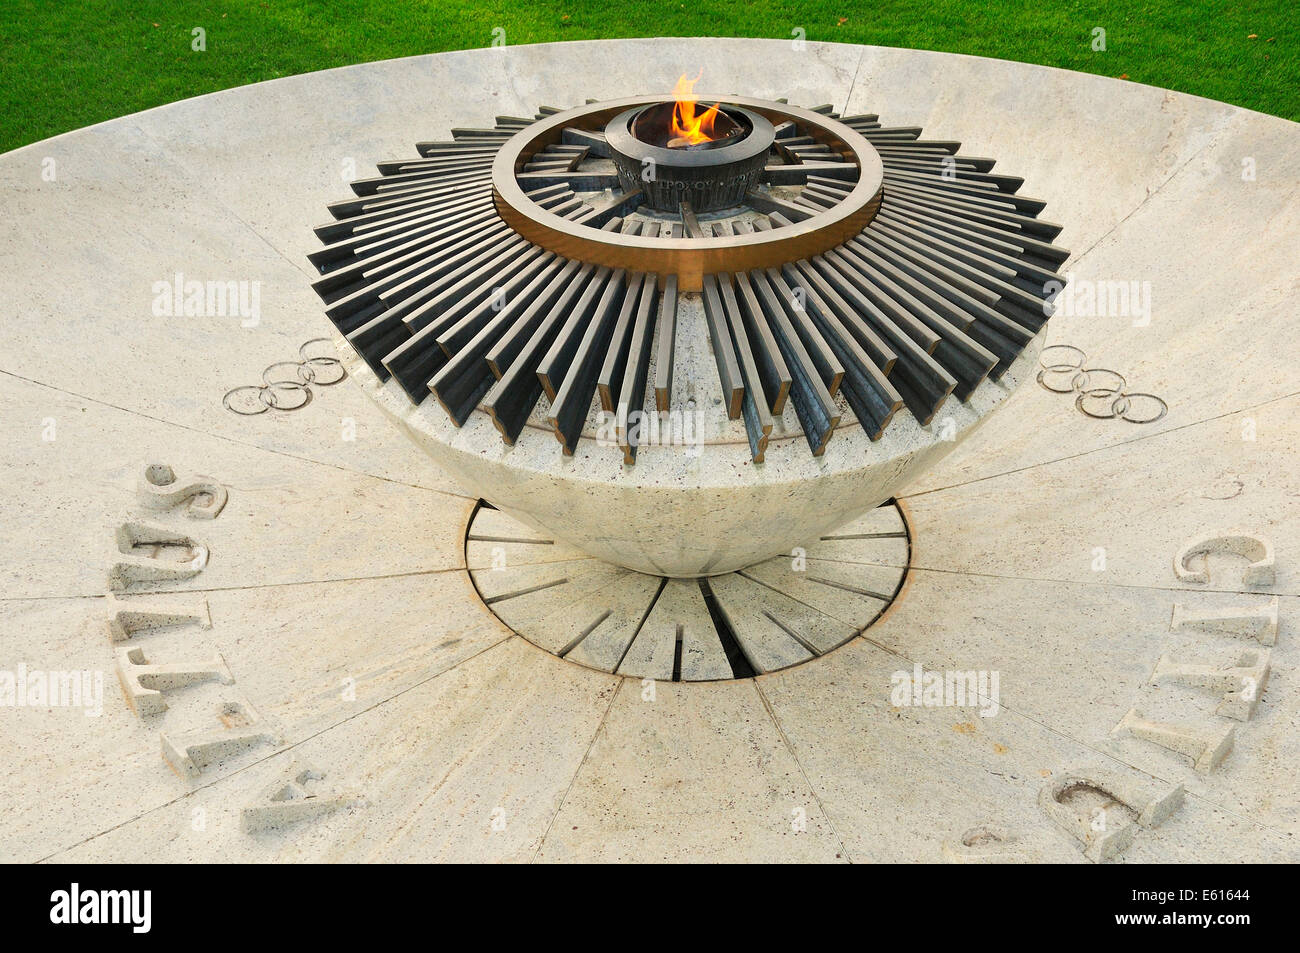 Constantly burning Olympic flame at the Museum Park, Olympic Museum, Lausanne, Canton of Vaud, Switzerland - Stock Image